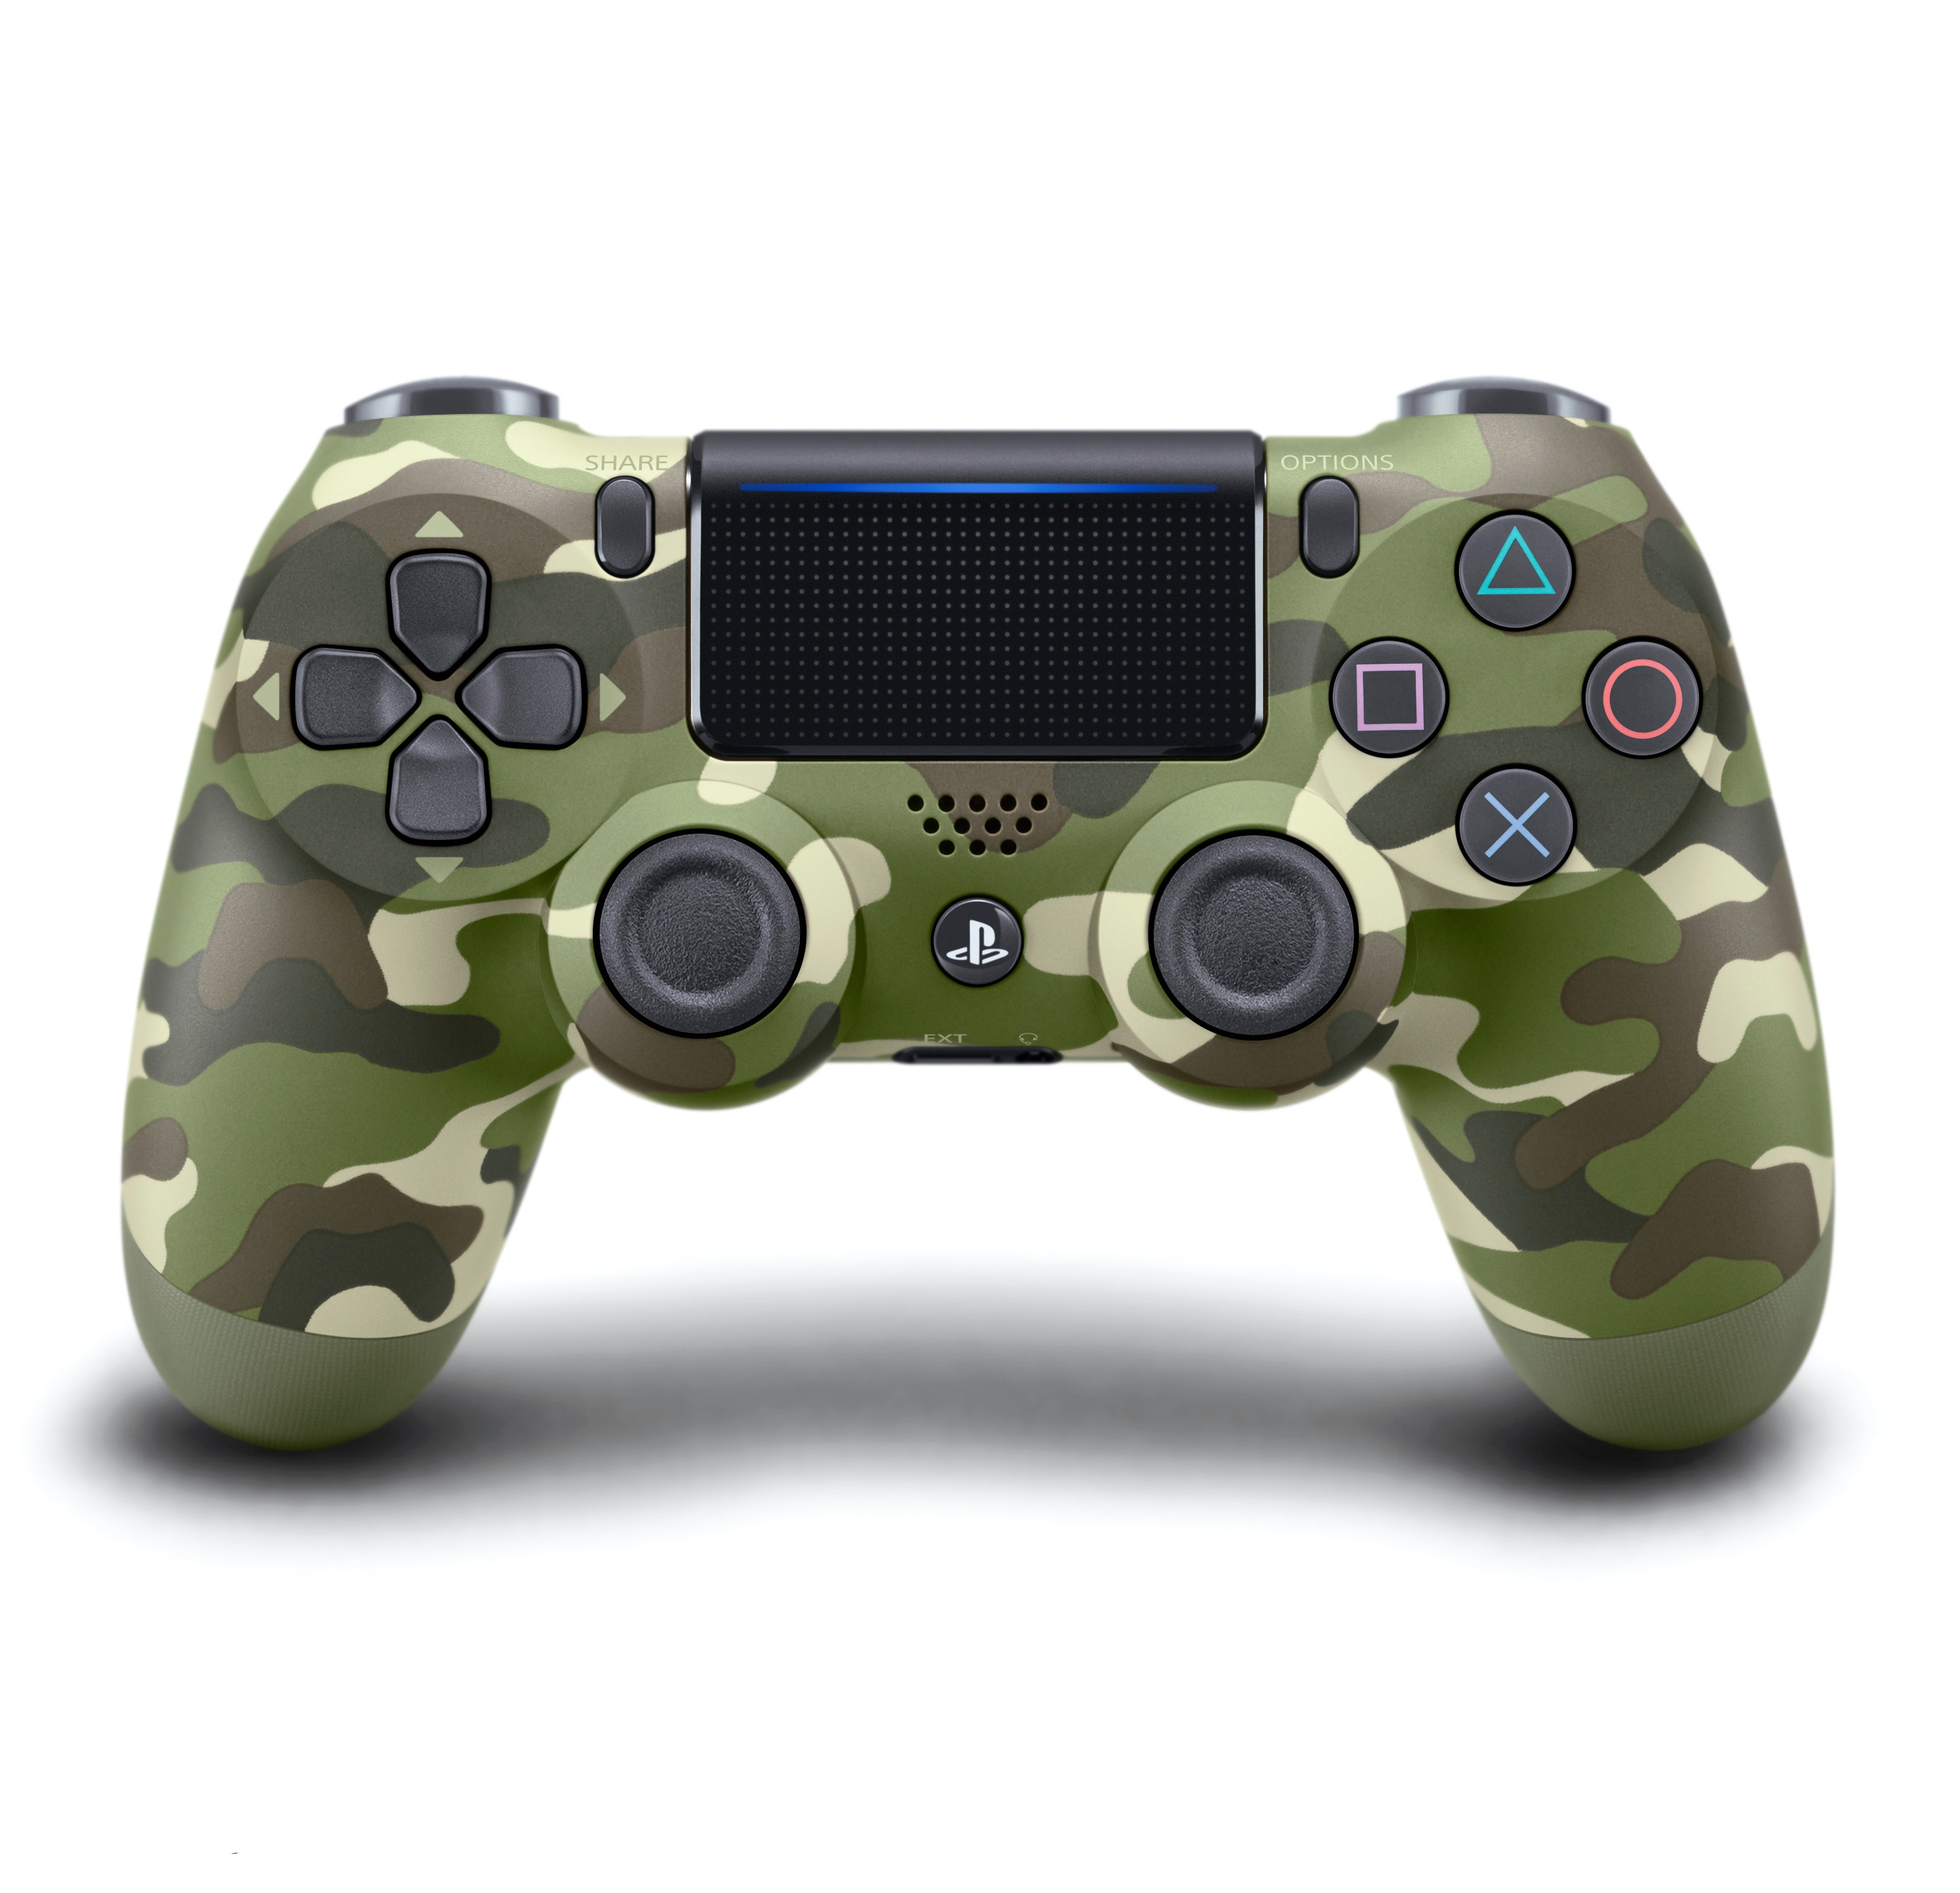 DualShock 4 Wireless Controller for PlayStation 4 -First High Copy  (Green Camouflage)